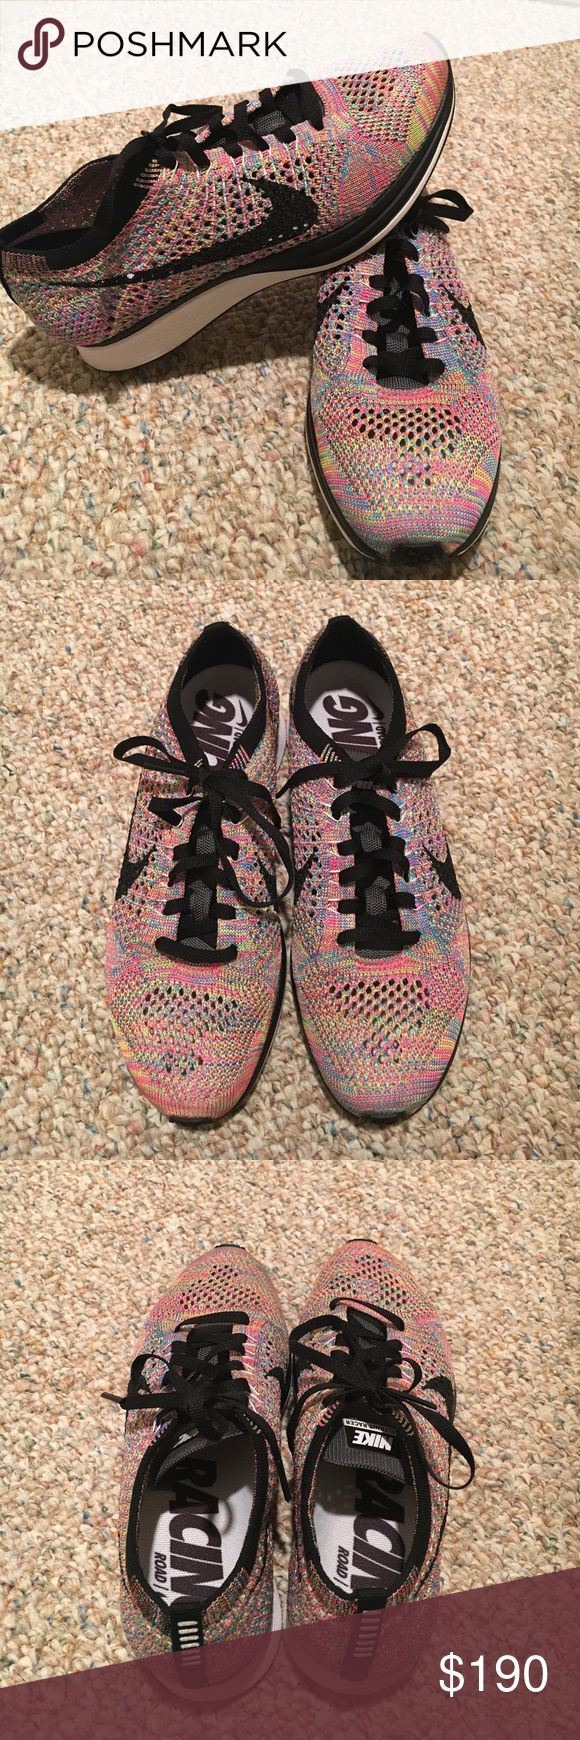 Nike Flyknit Racer Multicolor - gray tongue 2016; US 5 in men's (US 6.5 in women's) lightly worn once; no box but have original email receipt Nike Shoes Sneakers